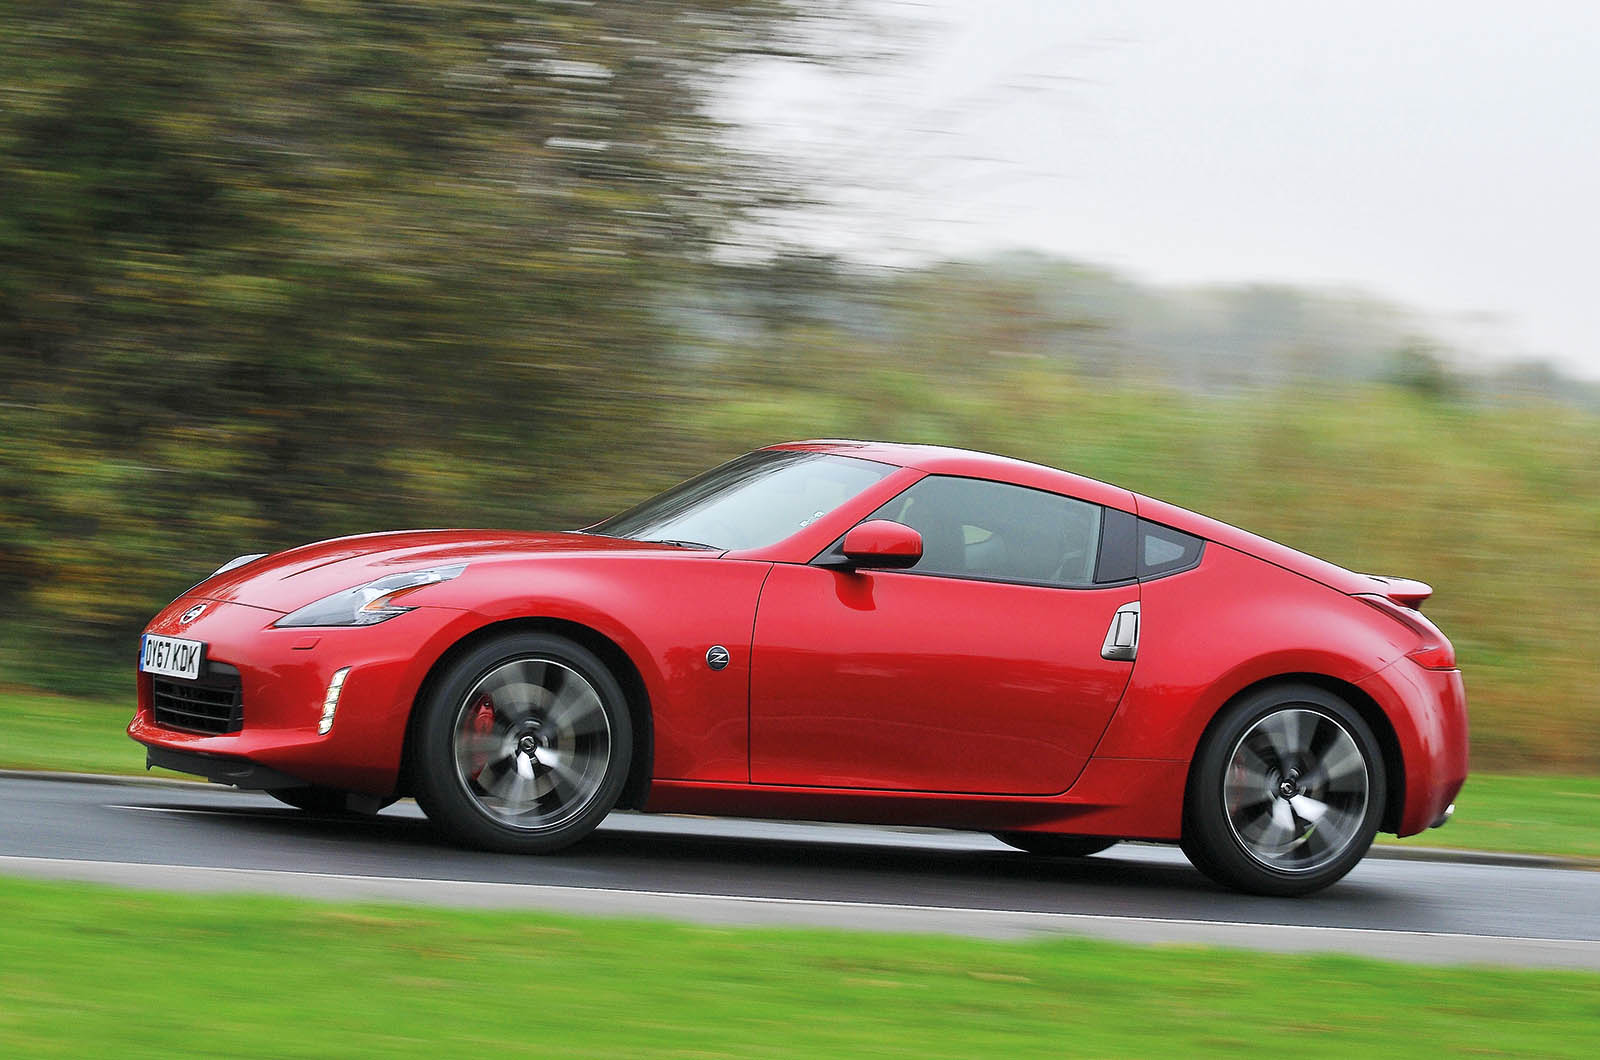 36 All New 2020 Nissan Z35 Review Wallpaper